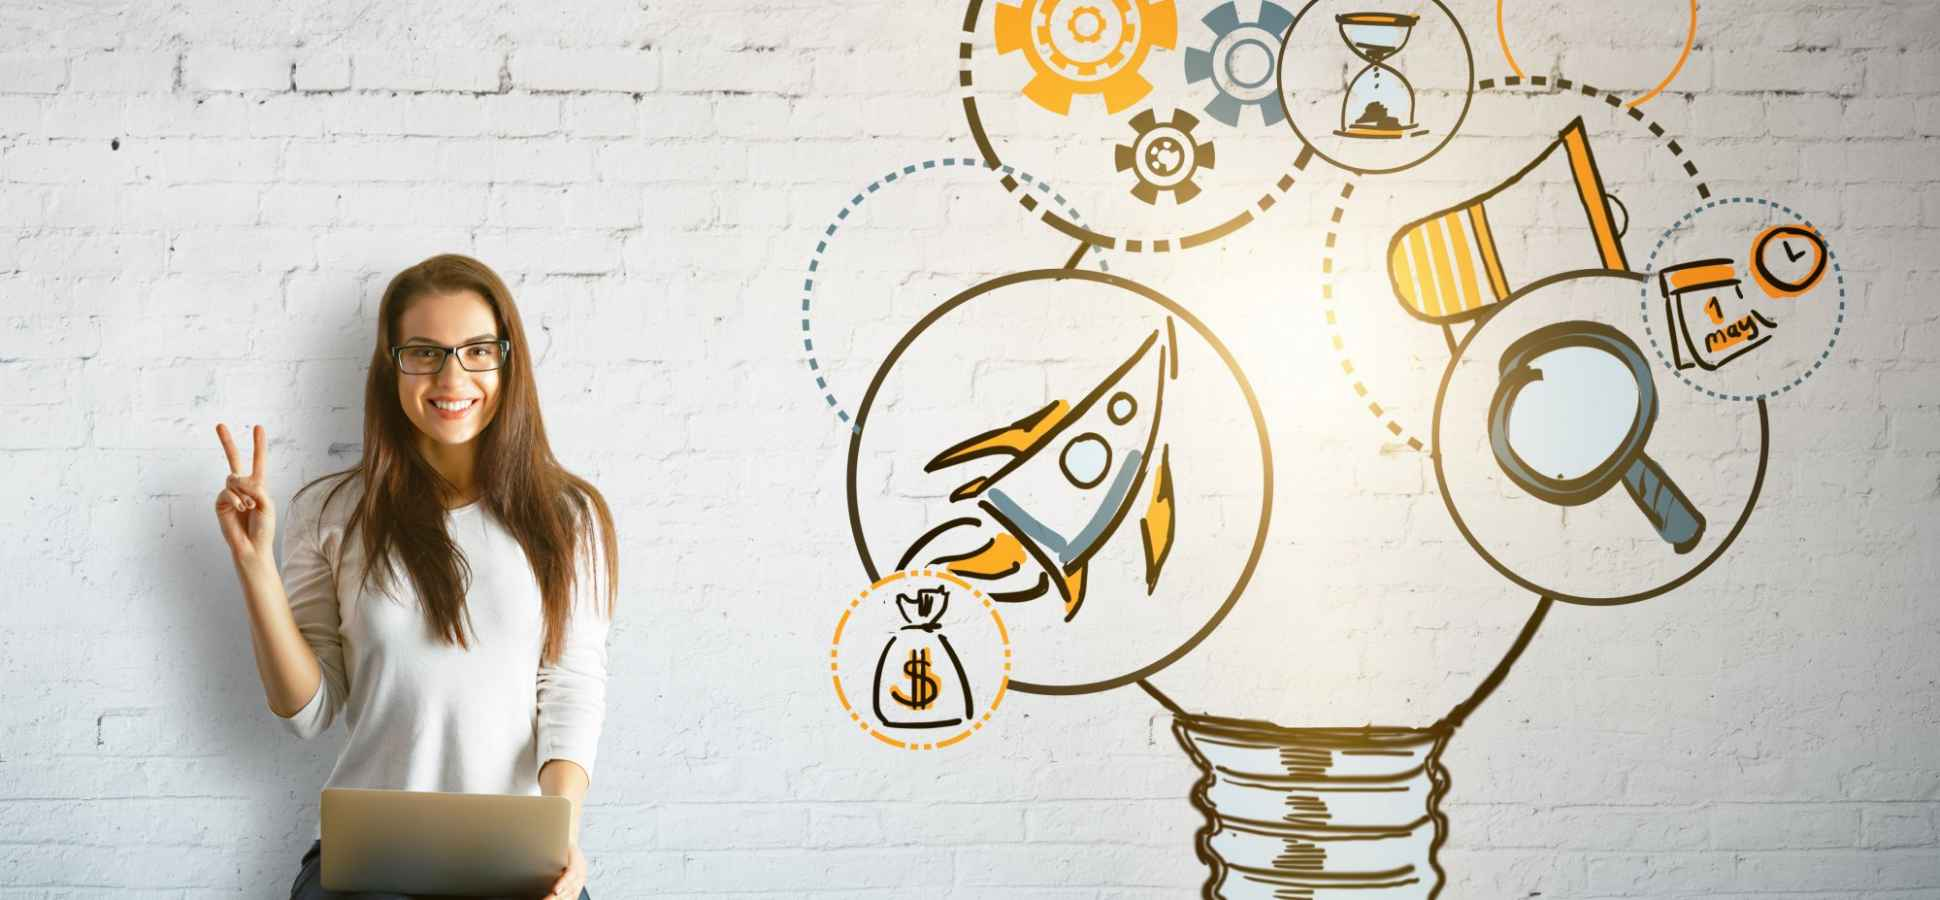 MBA vs. Startup -- What's the Better ROI for $100,000?